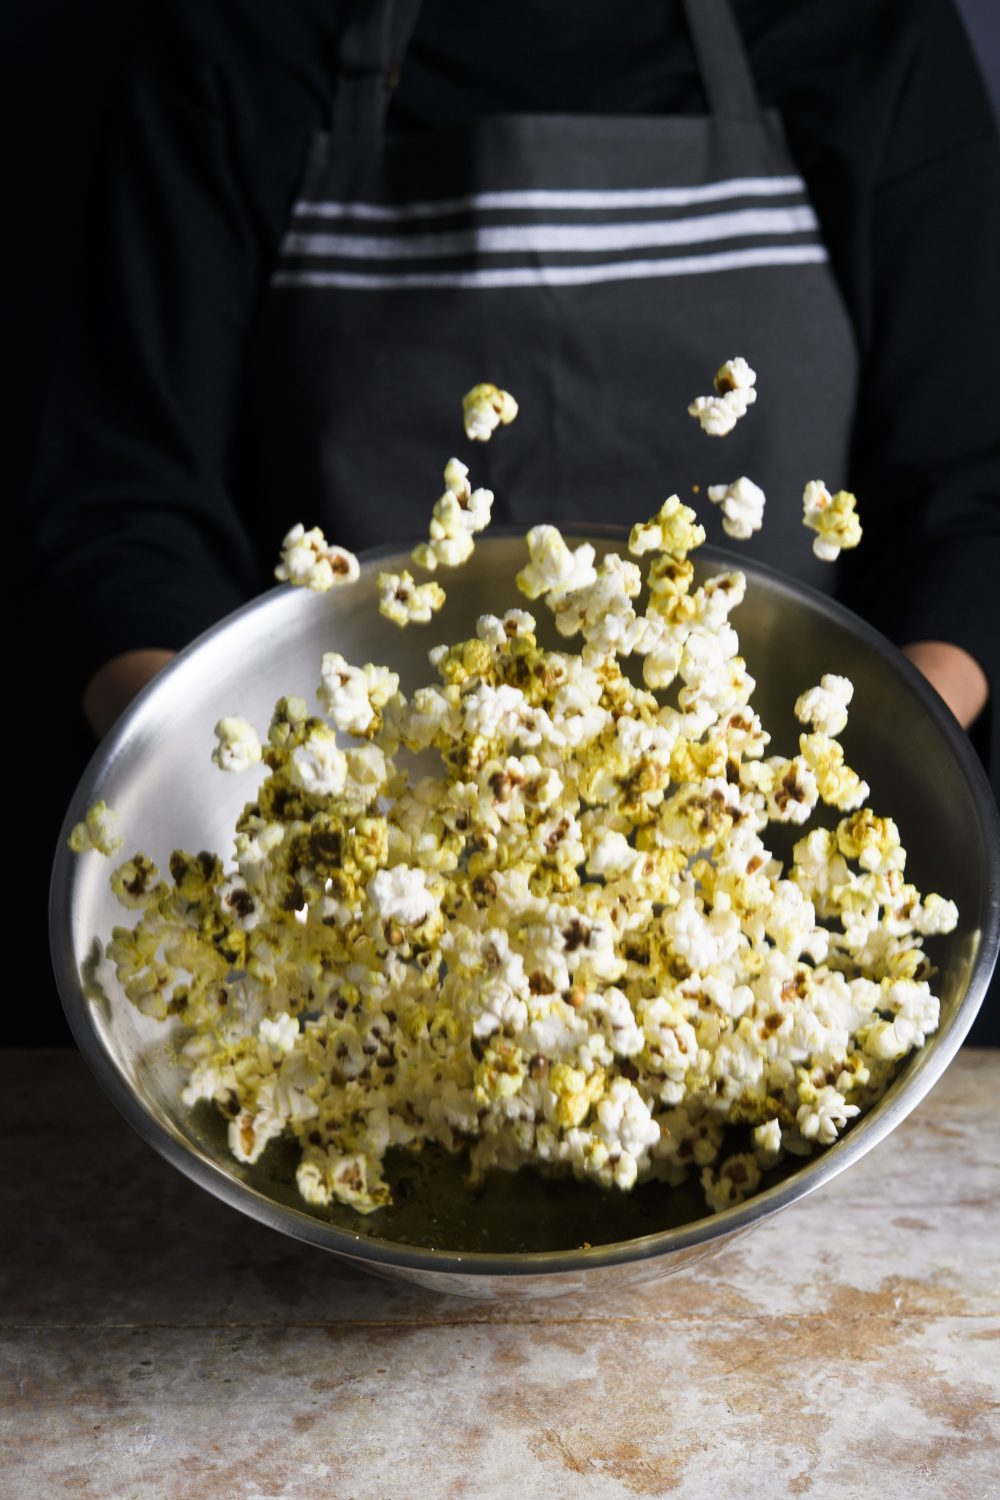 Spicing Up Popcorn